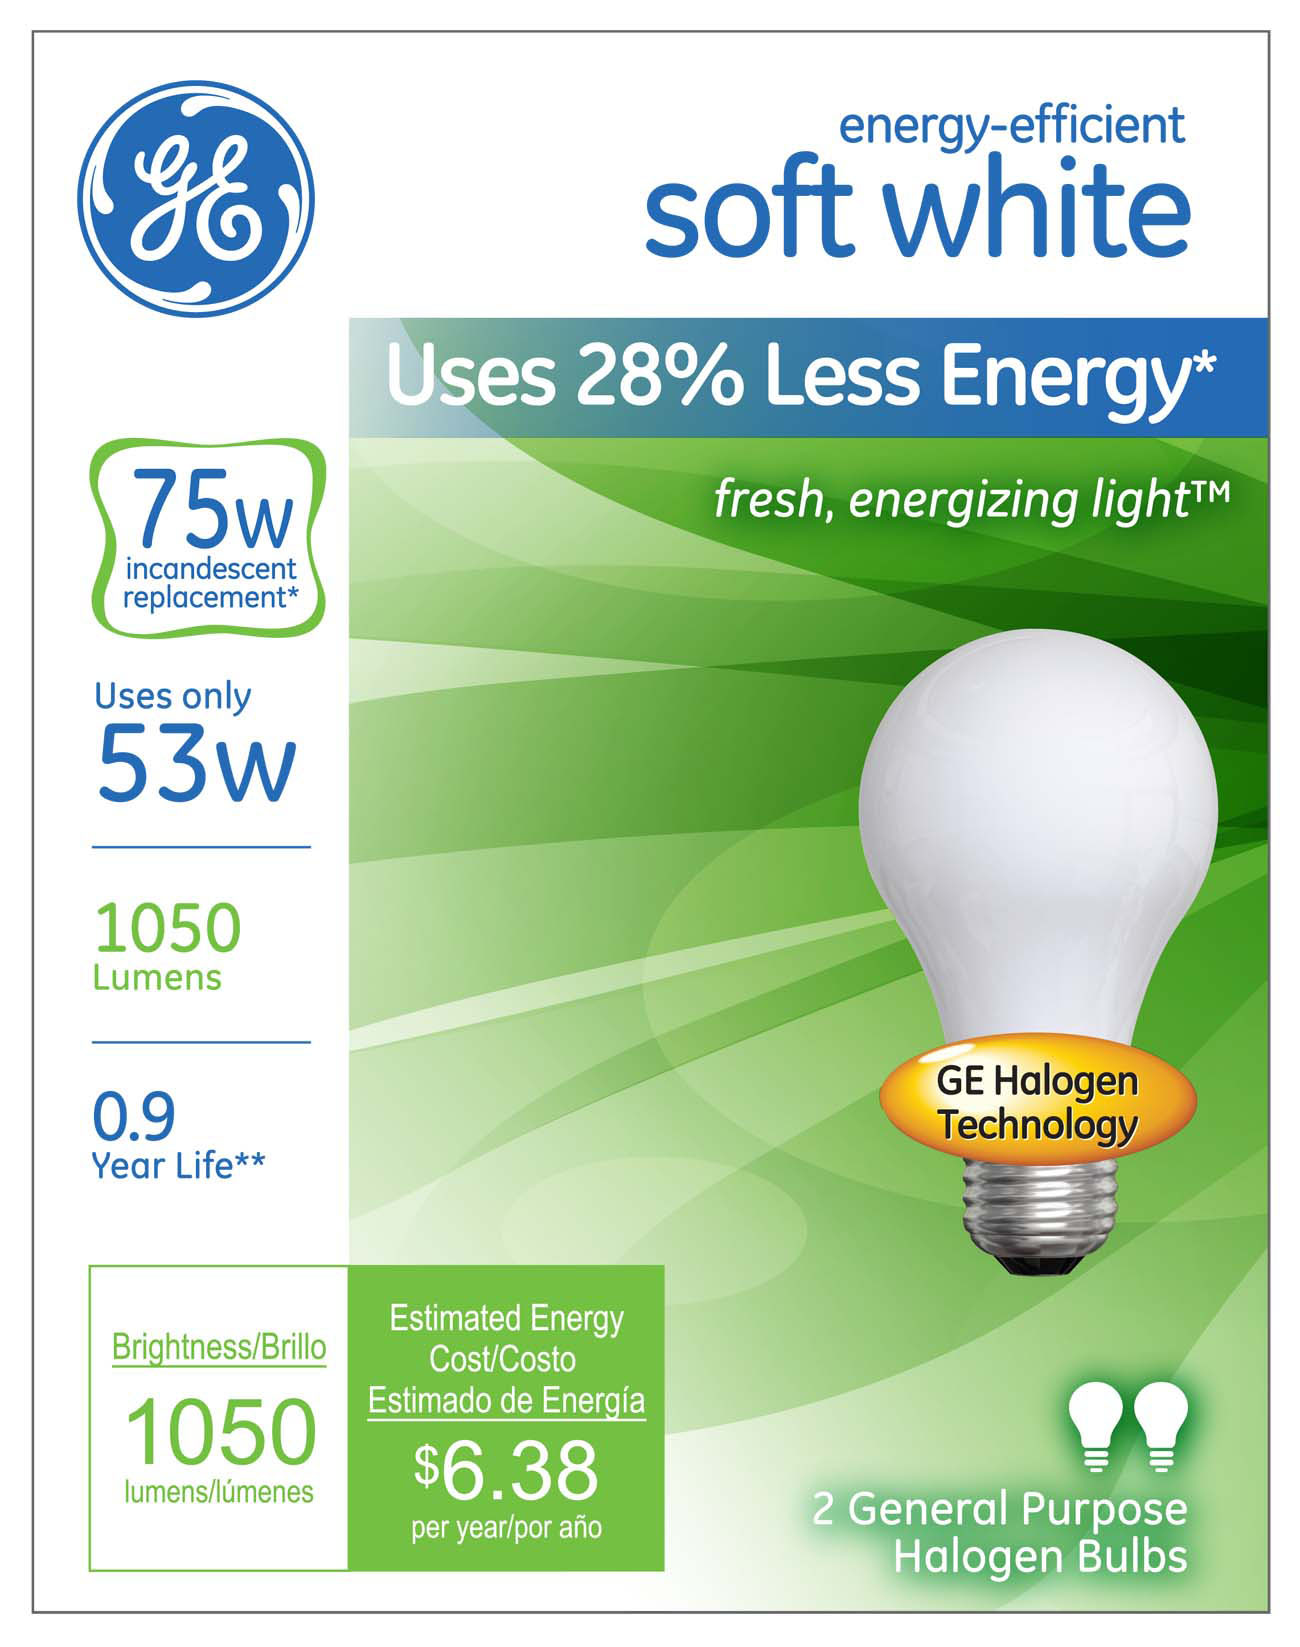 Rite aid ge light bulbs money making deal money saving mom Light bulbs energy efficient